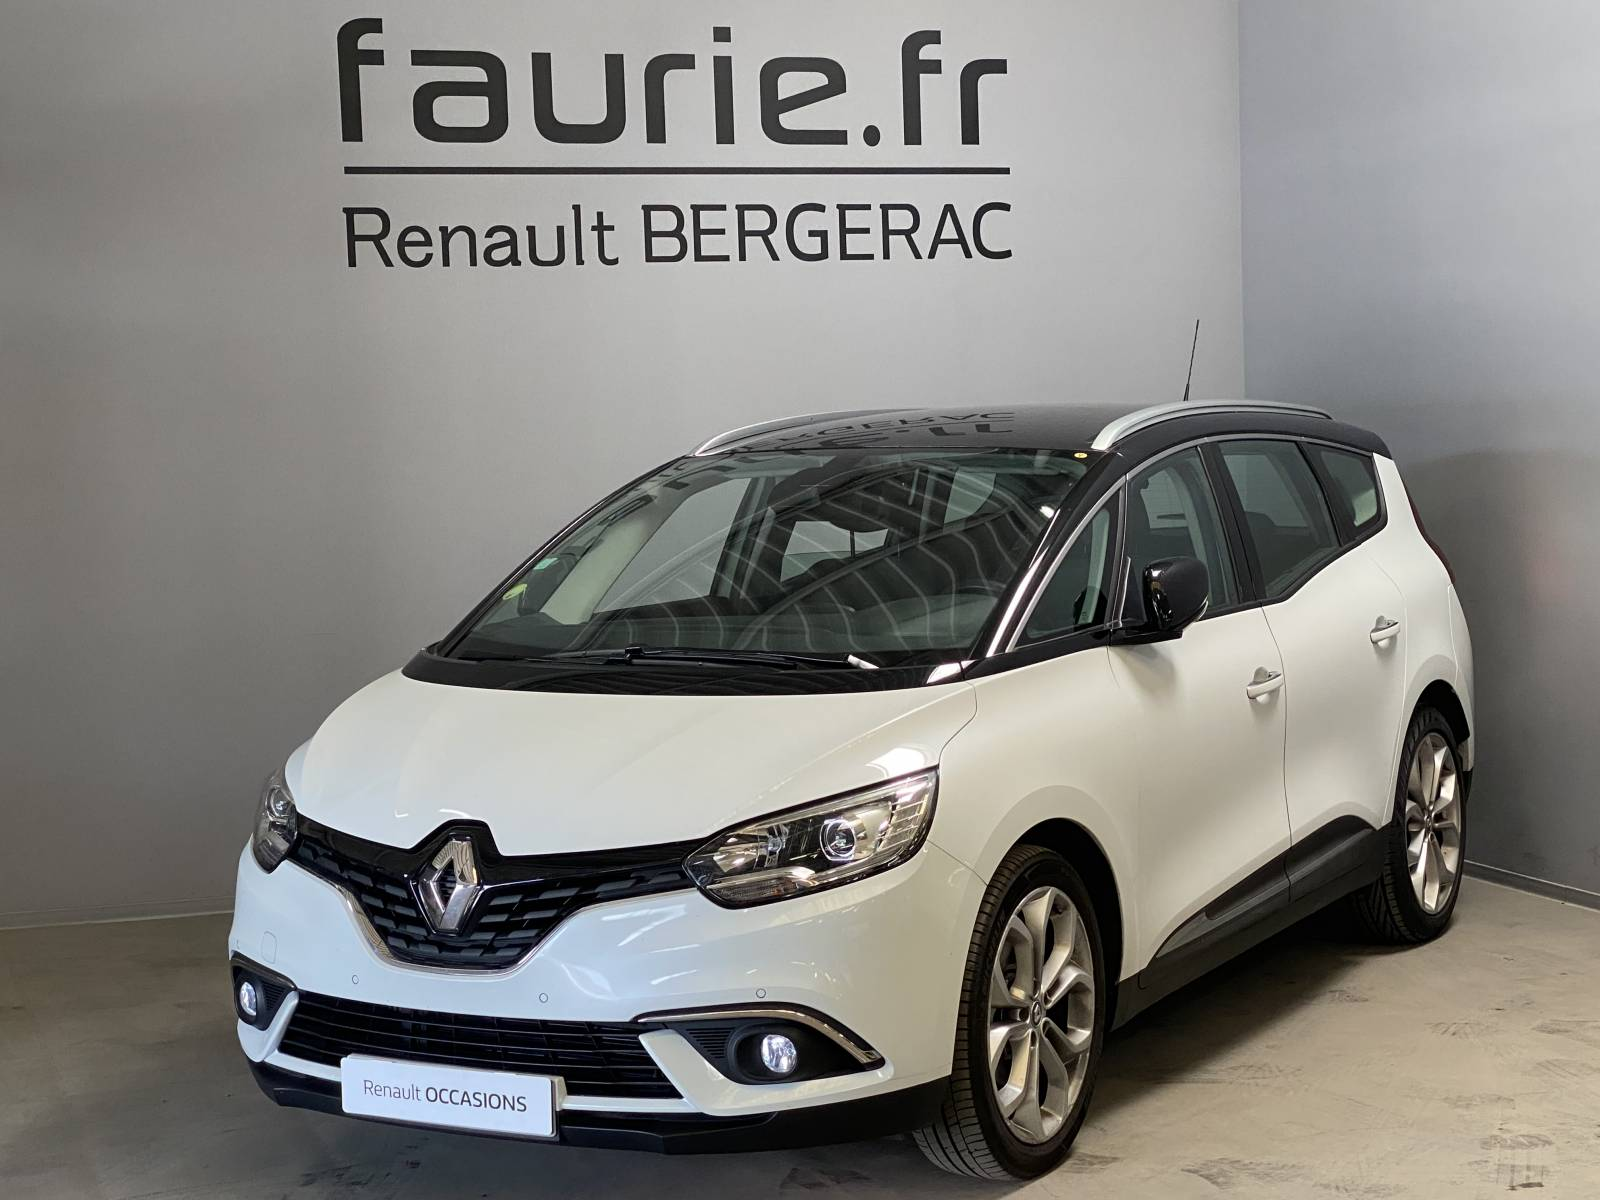 RENAULT Grand Scénic dCi 110 Energy EDC - véhicule d'occasion - Site Internet Faurie - Renault - Faurie Auto Bergerac - 24100 - Bergerac - 1